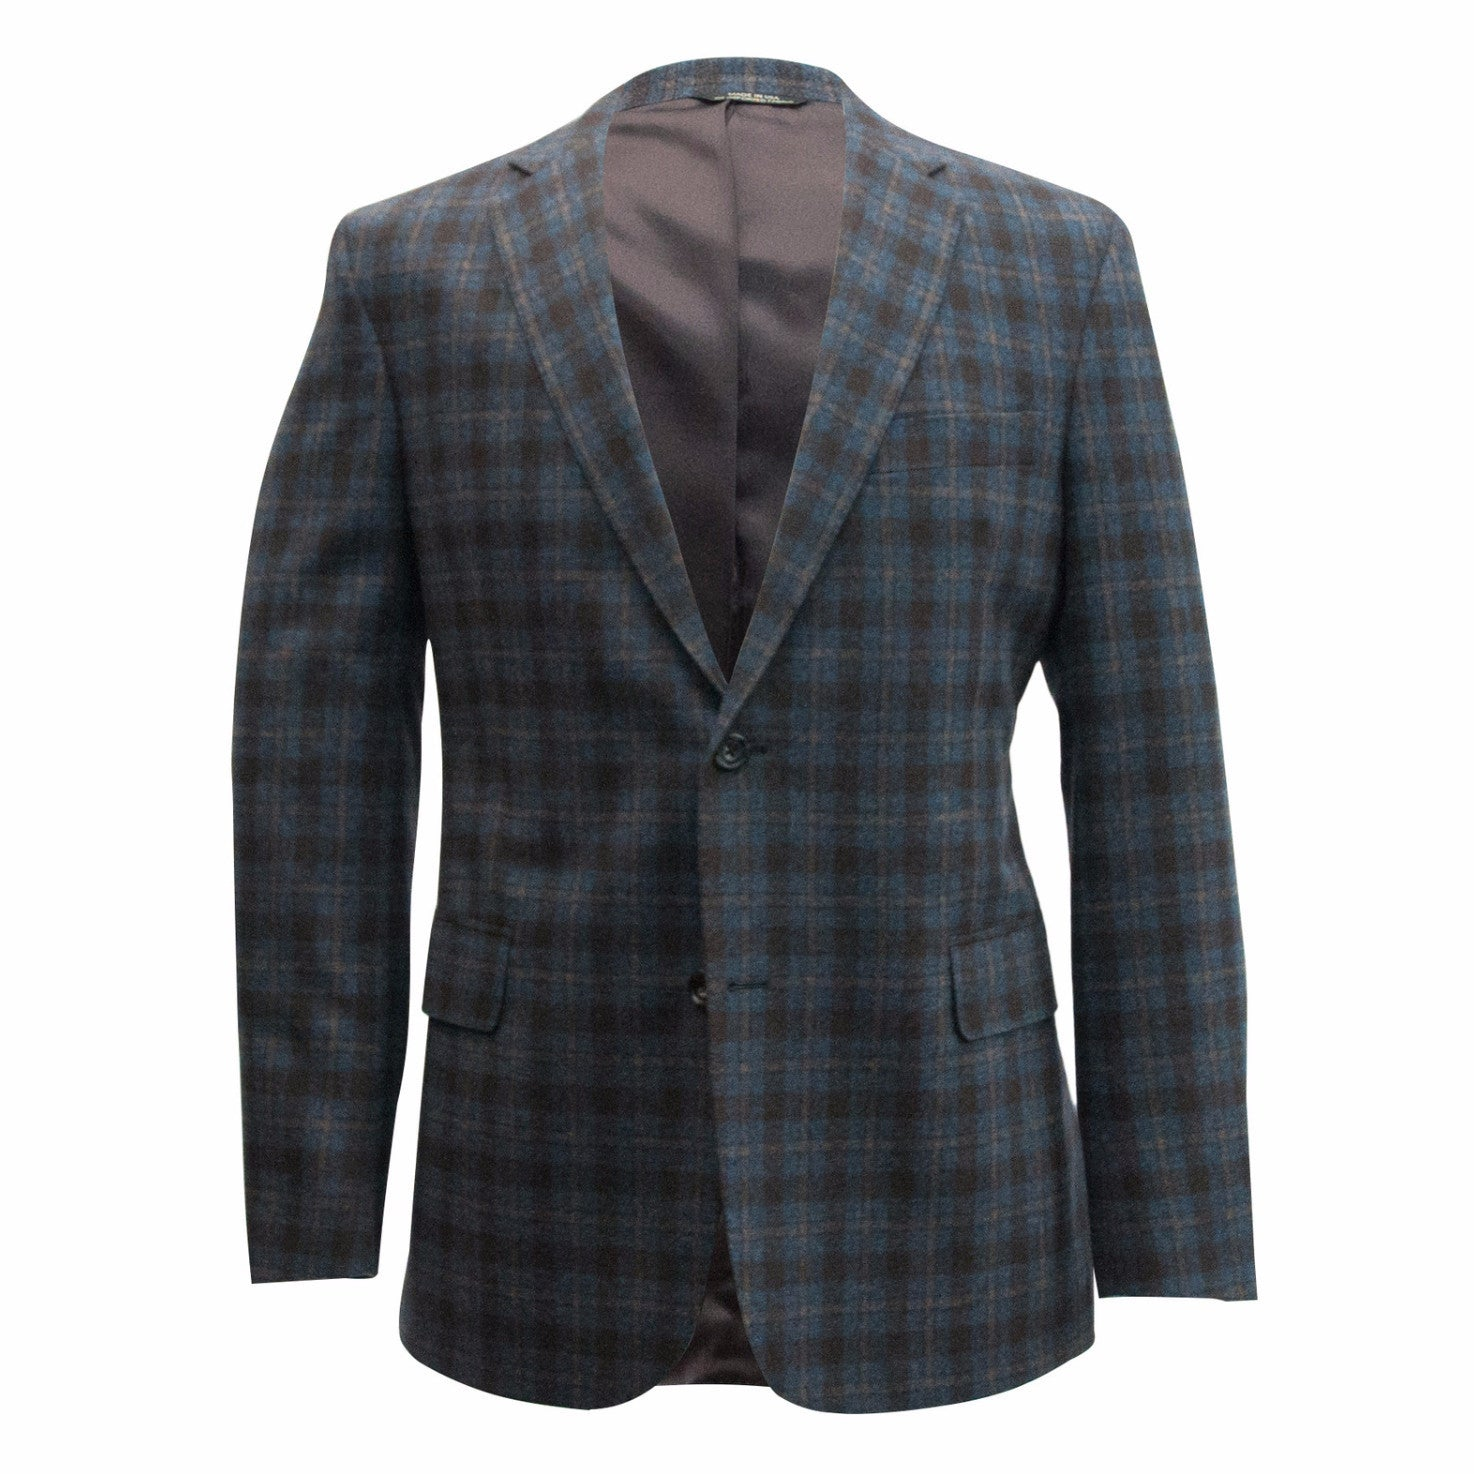 The Copper Plaid Sport Coat